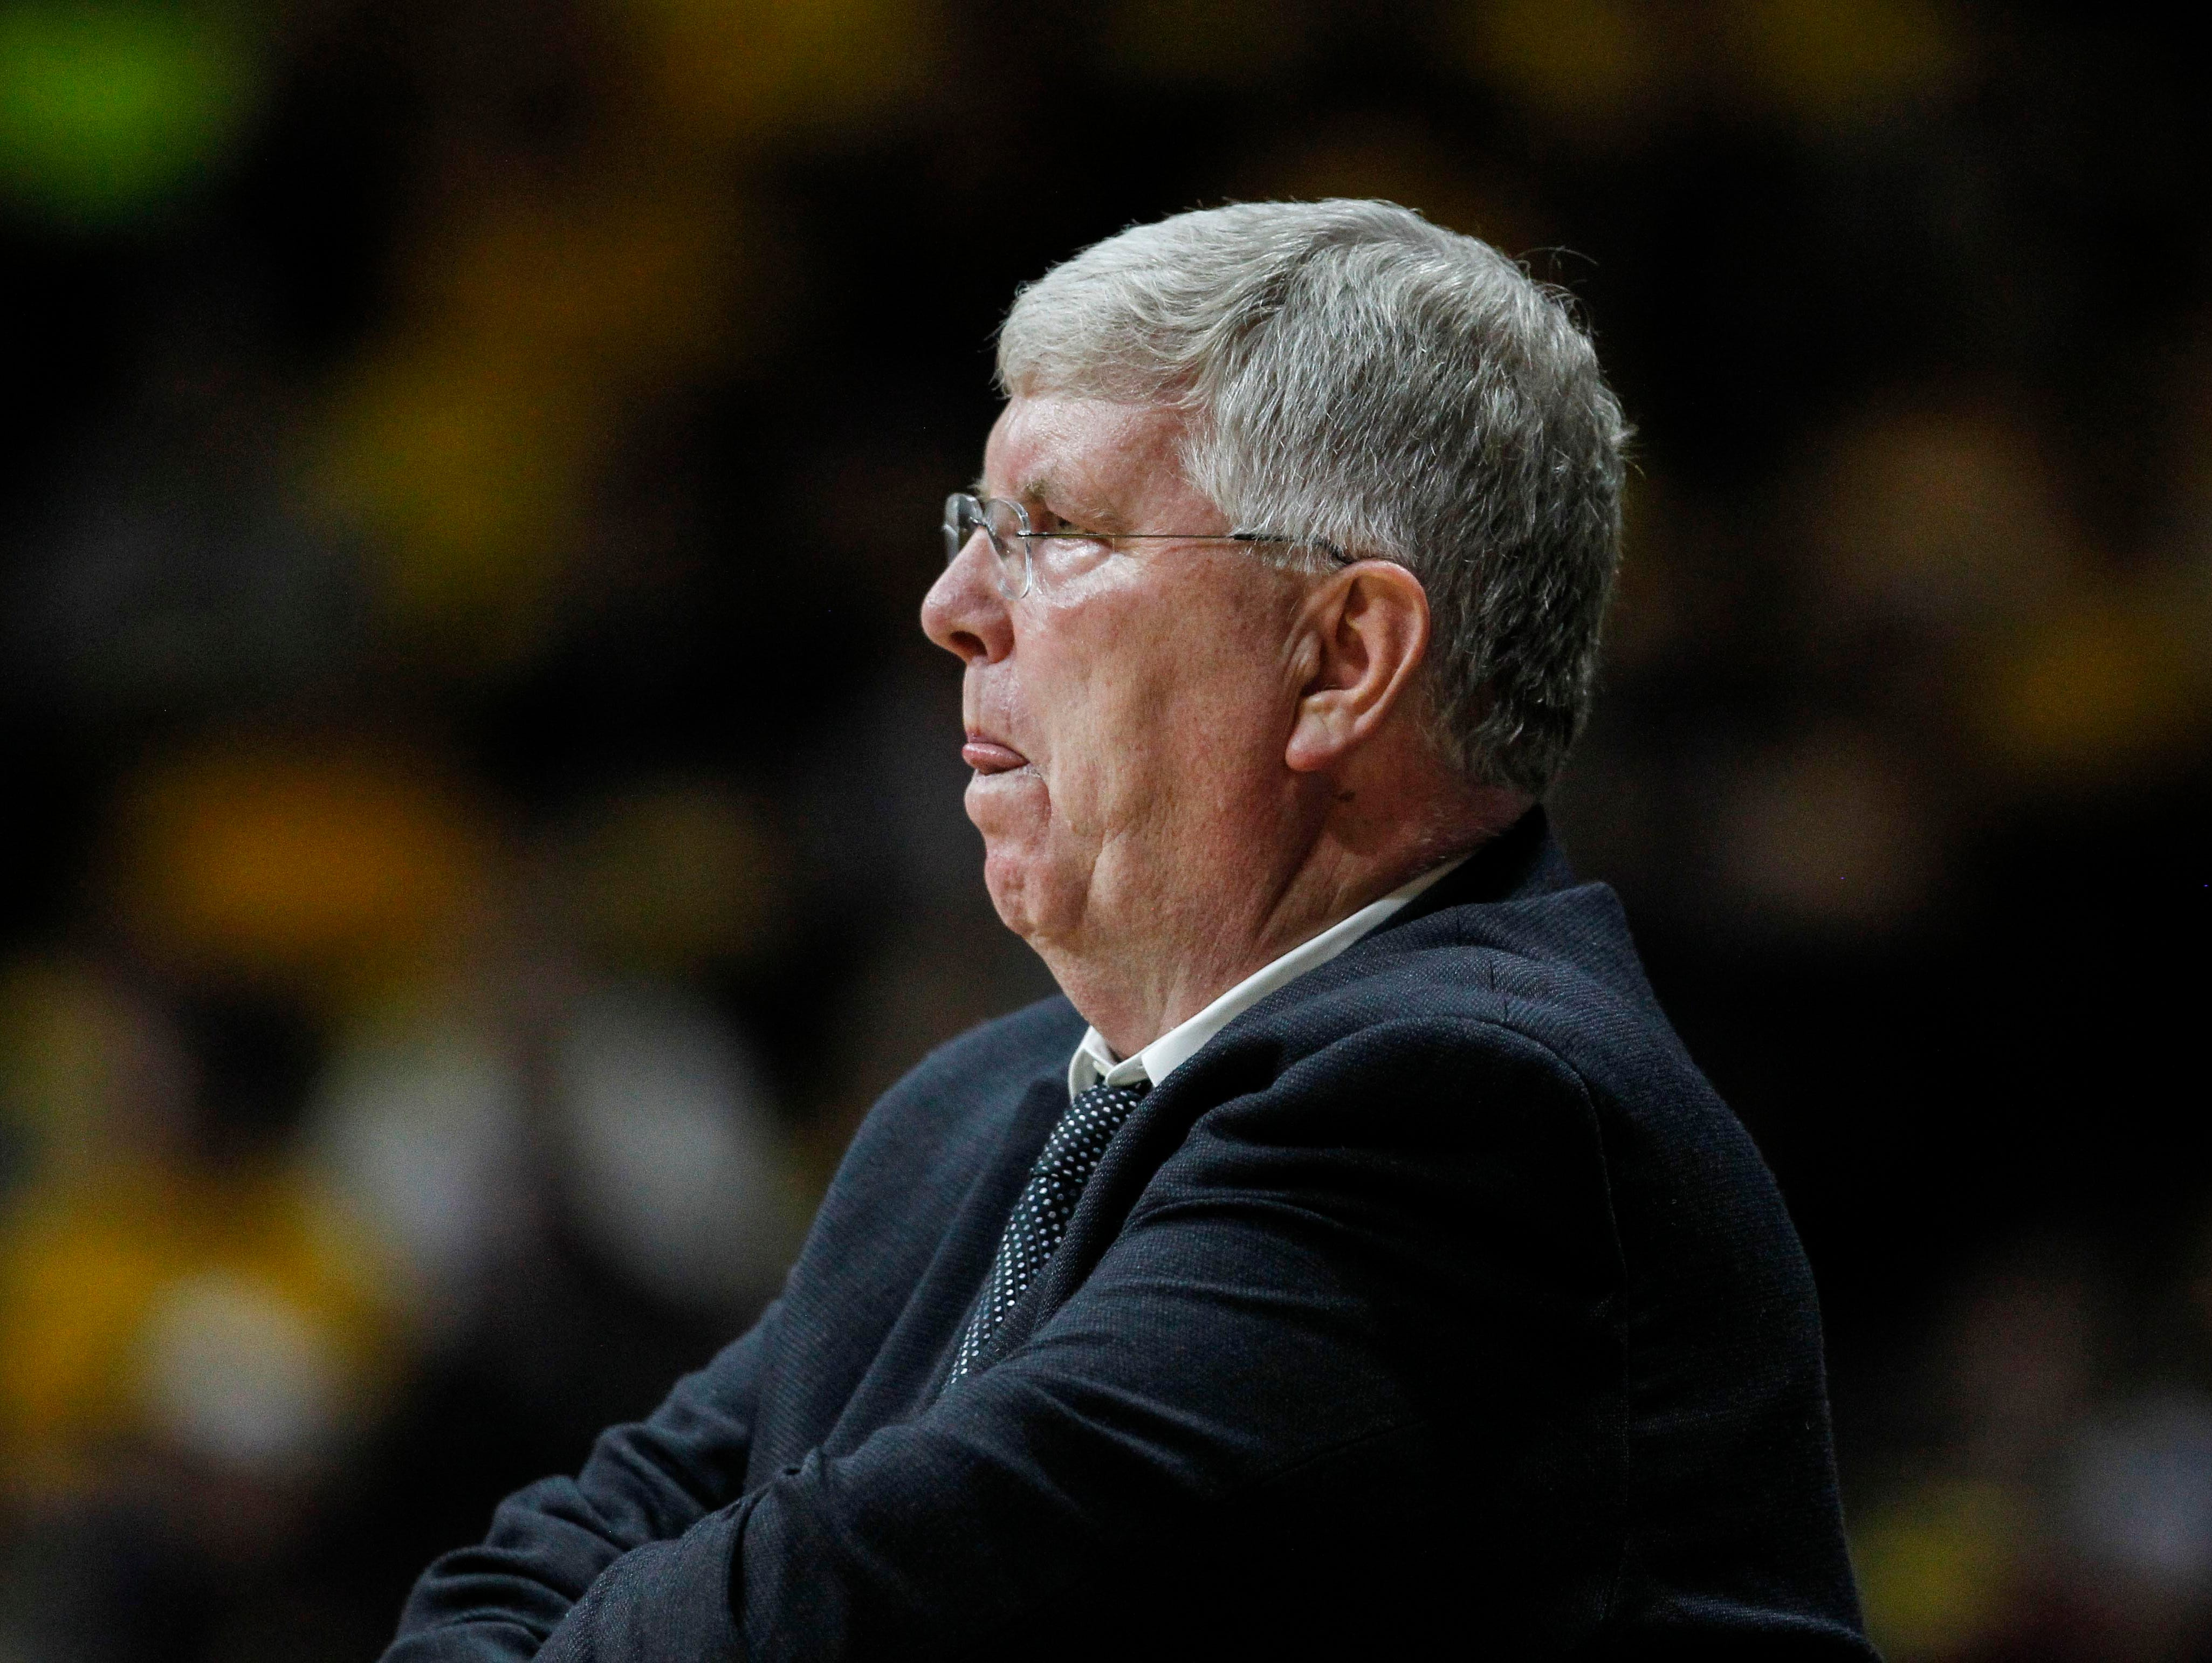 Mar 4, 2015: Utah State Aggies head coach Stew Morrill reacts against the Wyoming Cowboys during the first half at Arena-Auditorium. The Cowboys defeated the Aggies 76-53.